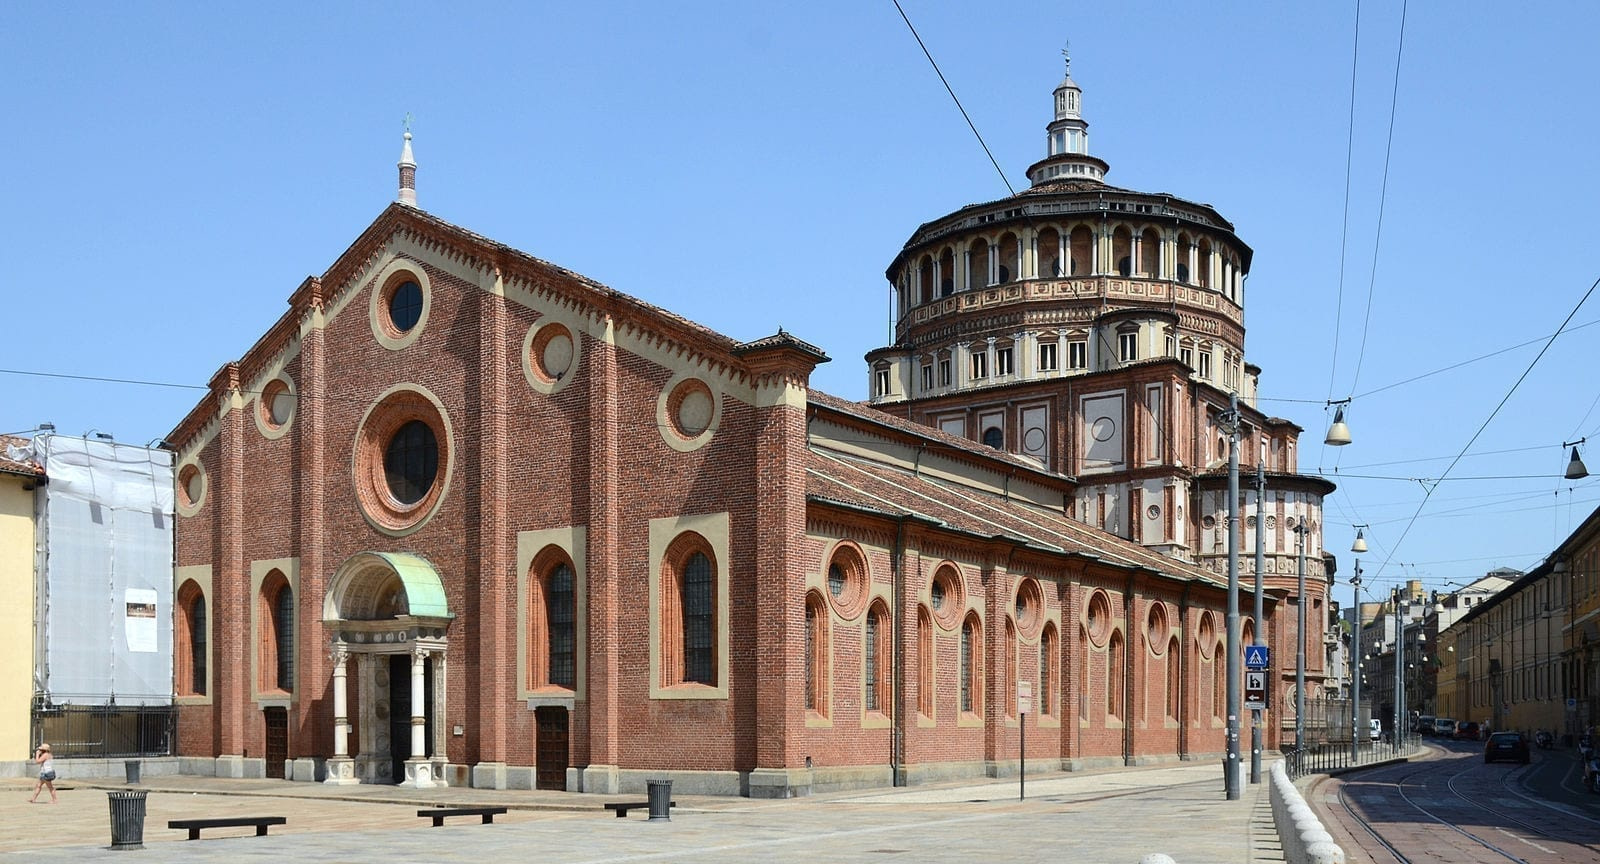 Italy's Most Beautiful Museums